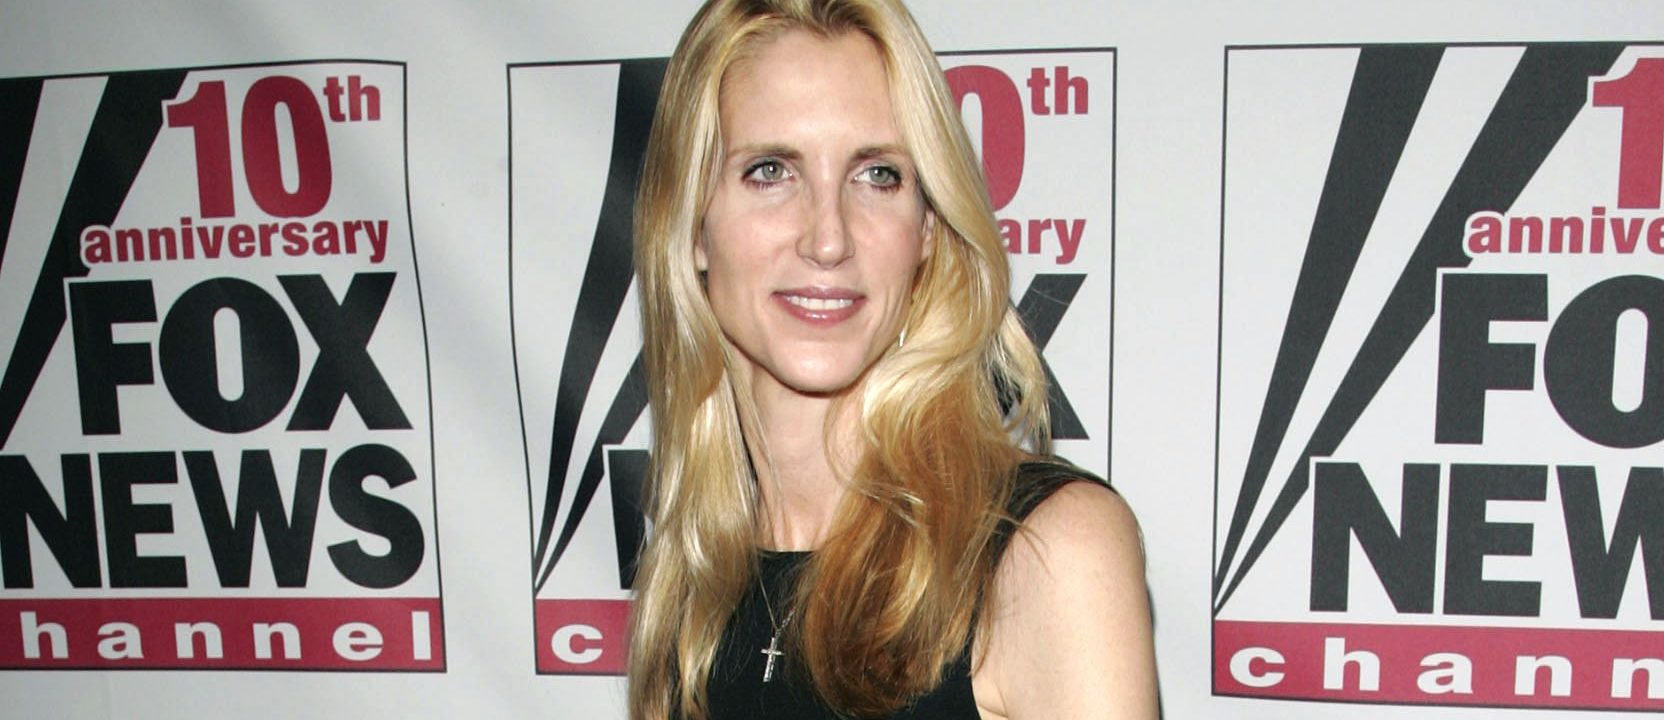 NEW YORK - OCTOBER 04: Author Ann Coulter attends the Fox News Channel 10th Anniversary celebration on October 4, 2006 in New York City. (Photo by Peter Kramer/Getty Images)